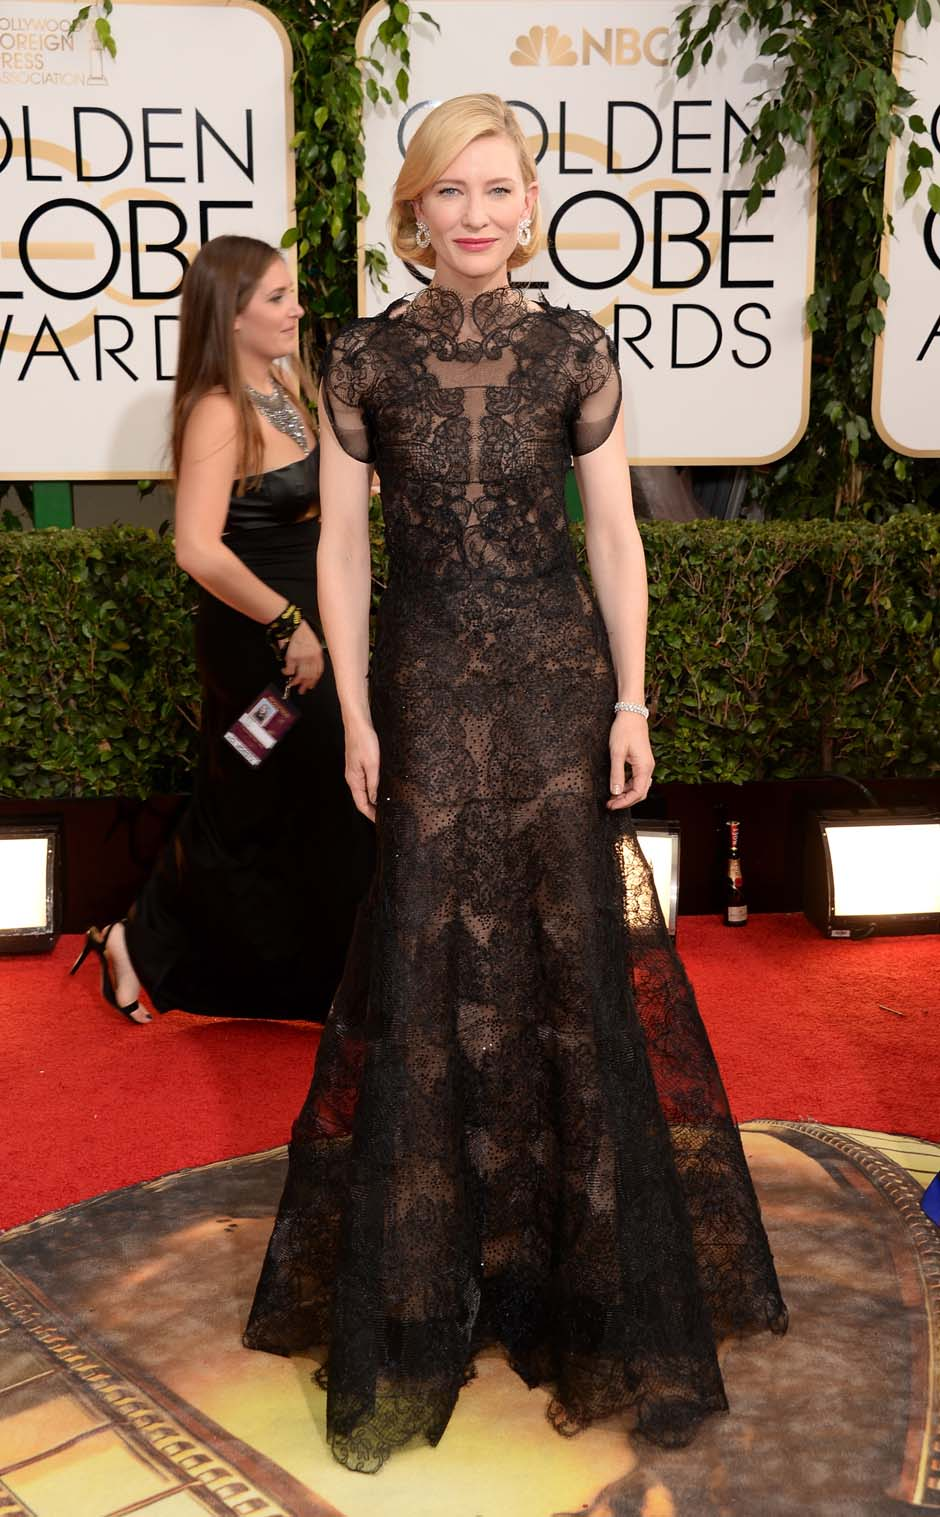 Cate Blanchett demonstrates pure grace and elegance in this Armani Couture dress.